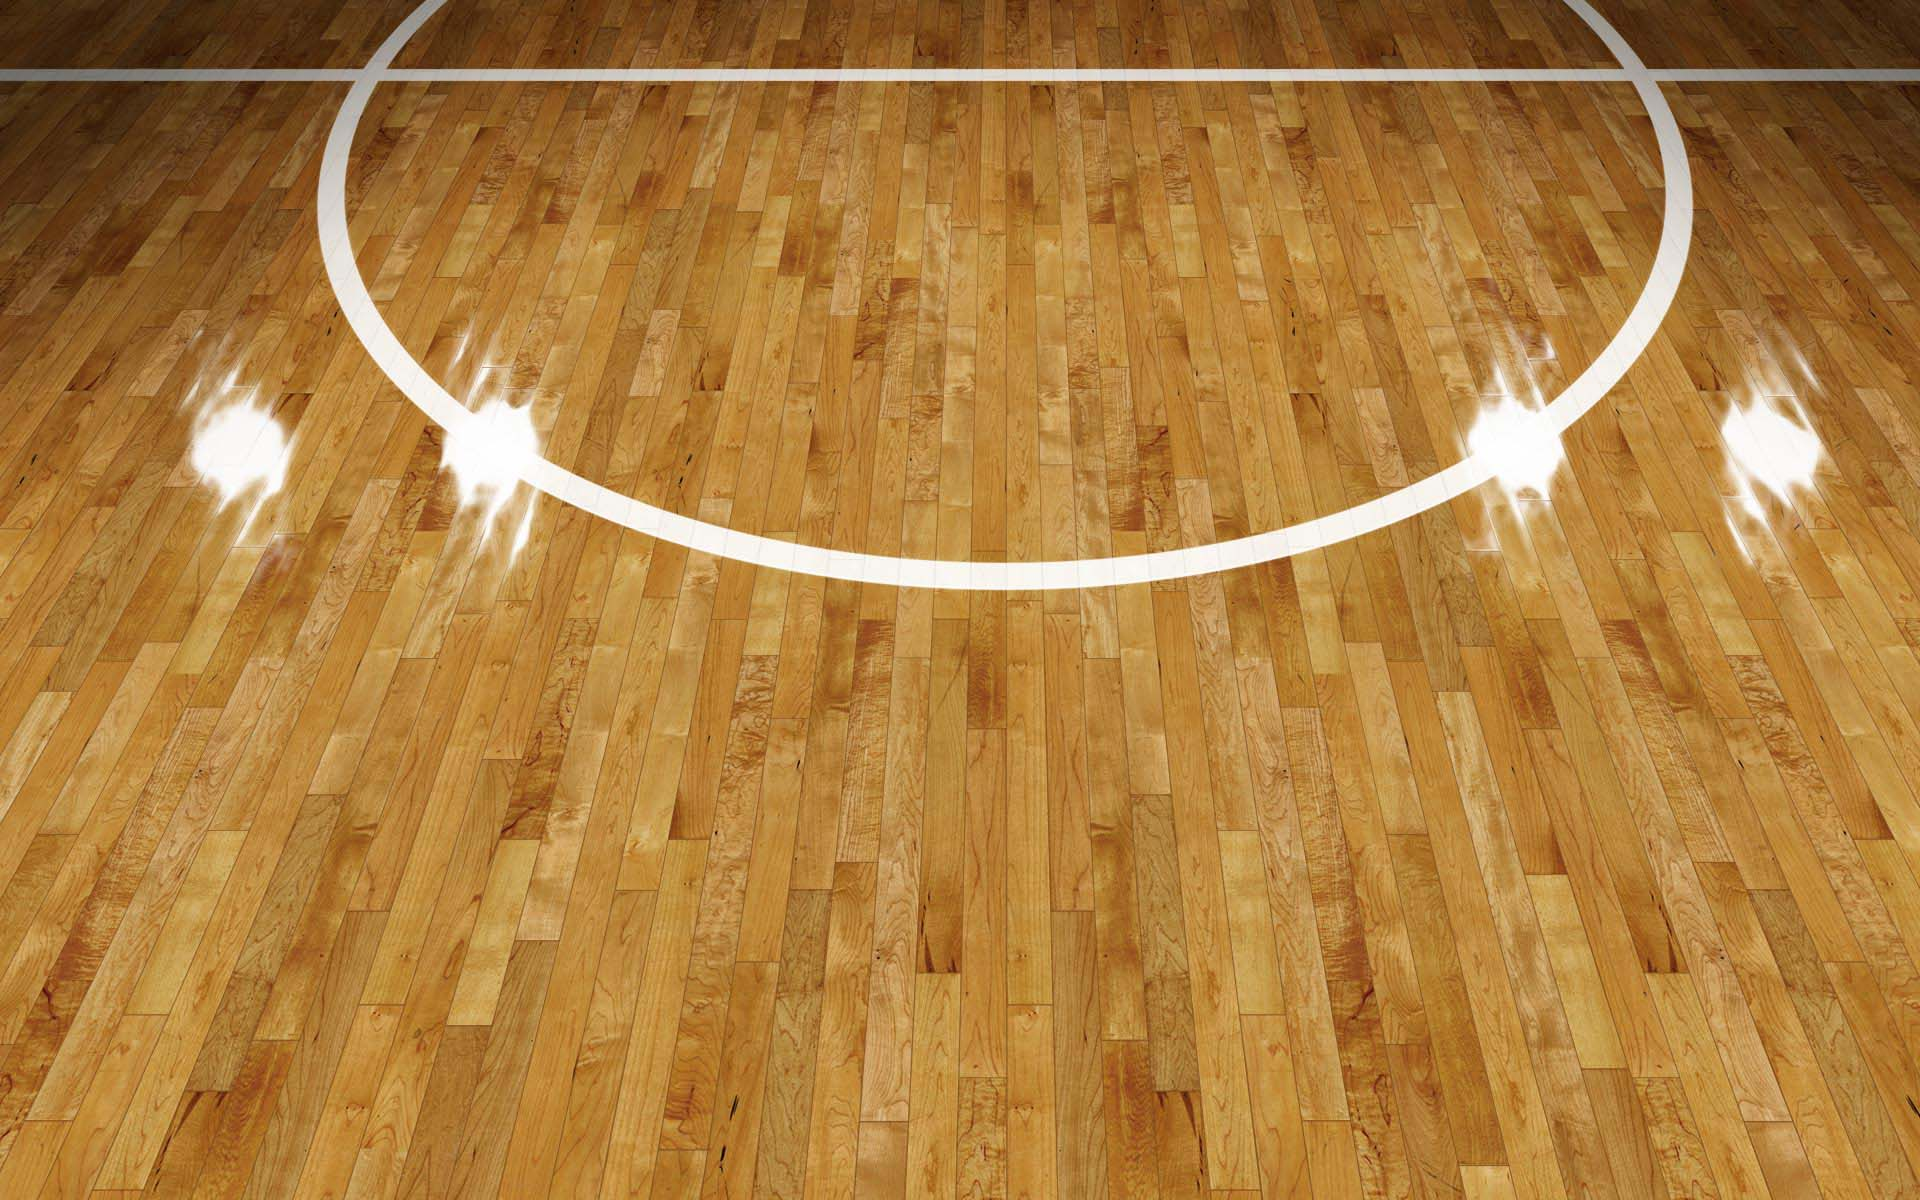 gym court tiles preeminent sport kits backyard outdoor flooring floors over home concrete floor basketball dimensions of mat exercise thick full carpet size